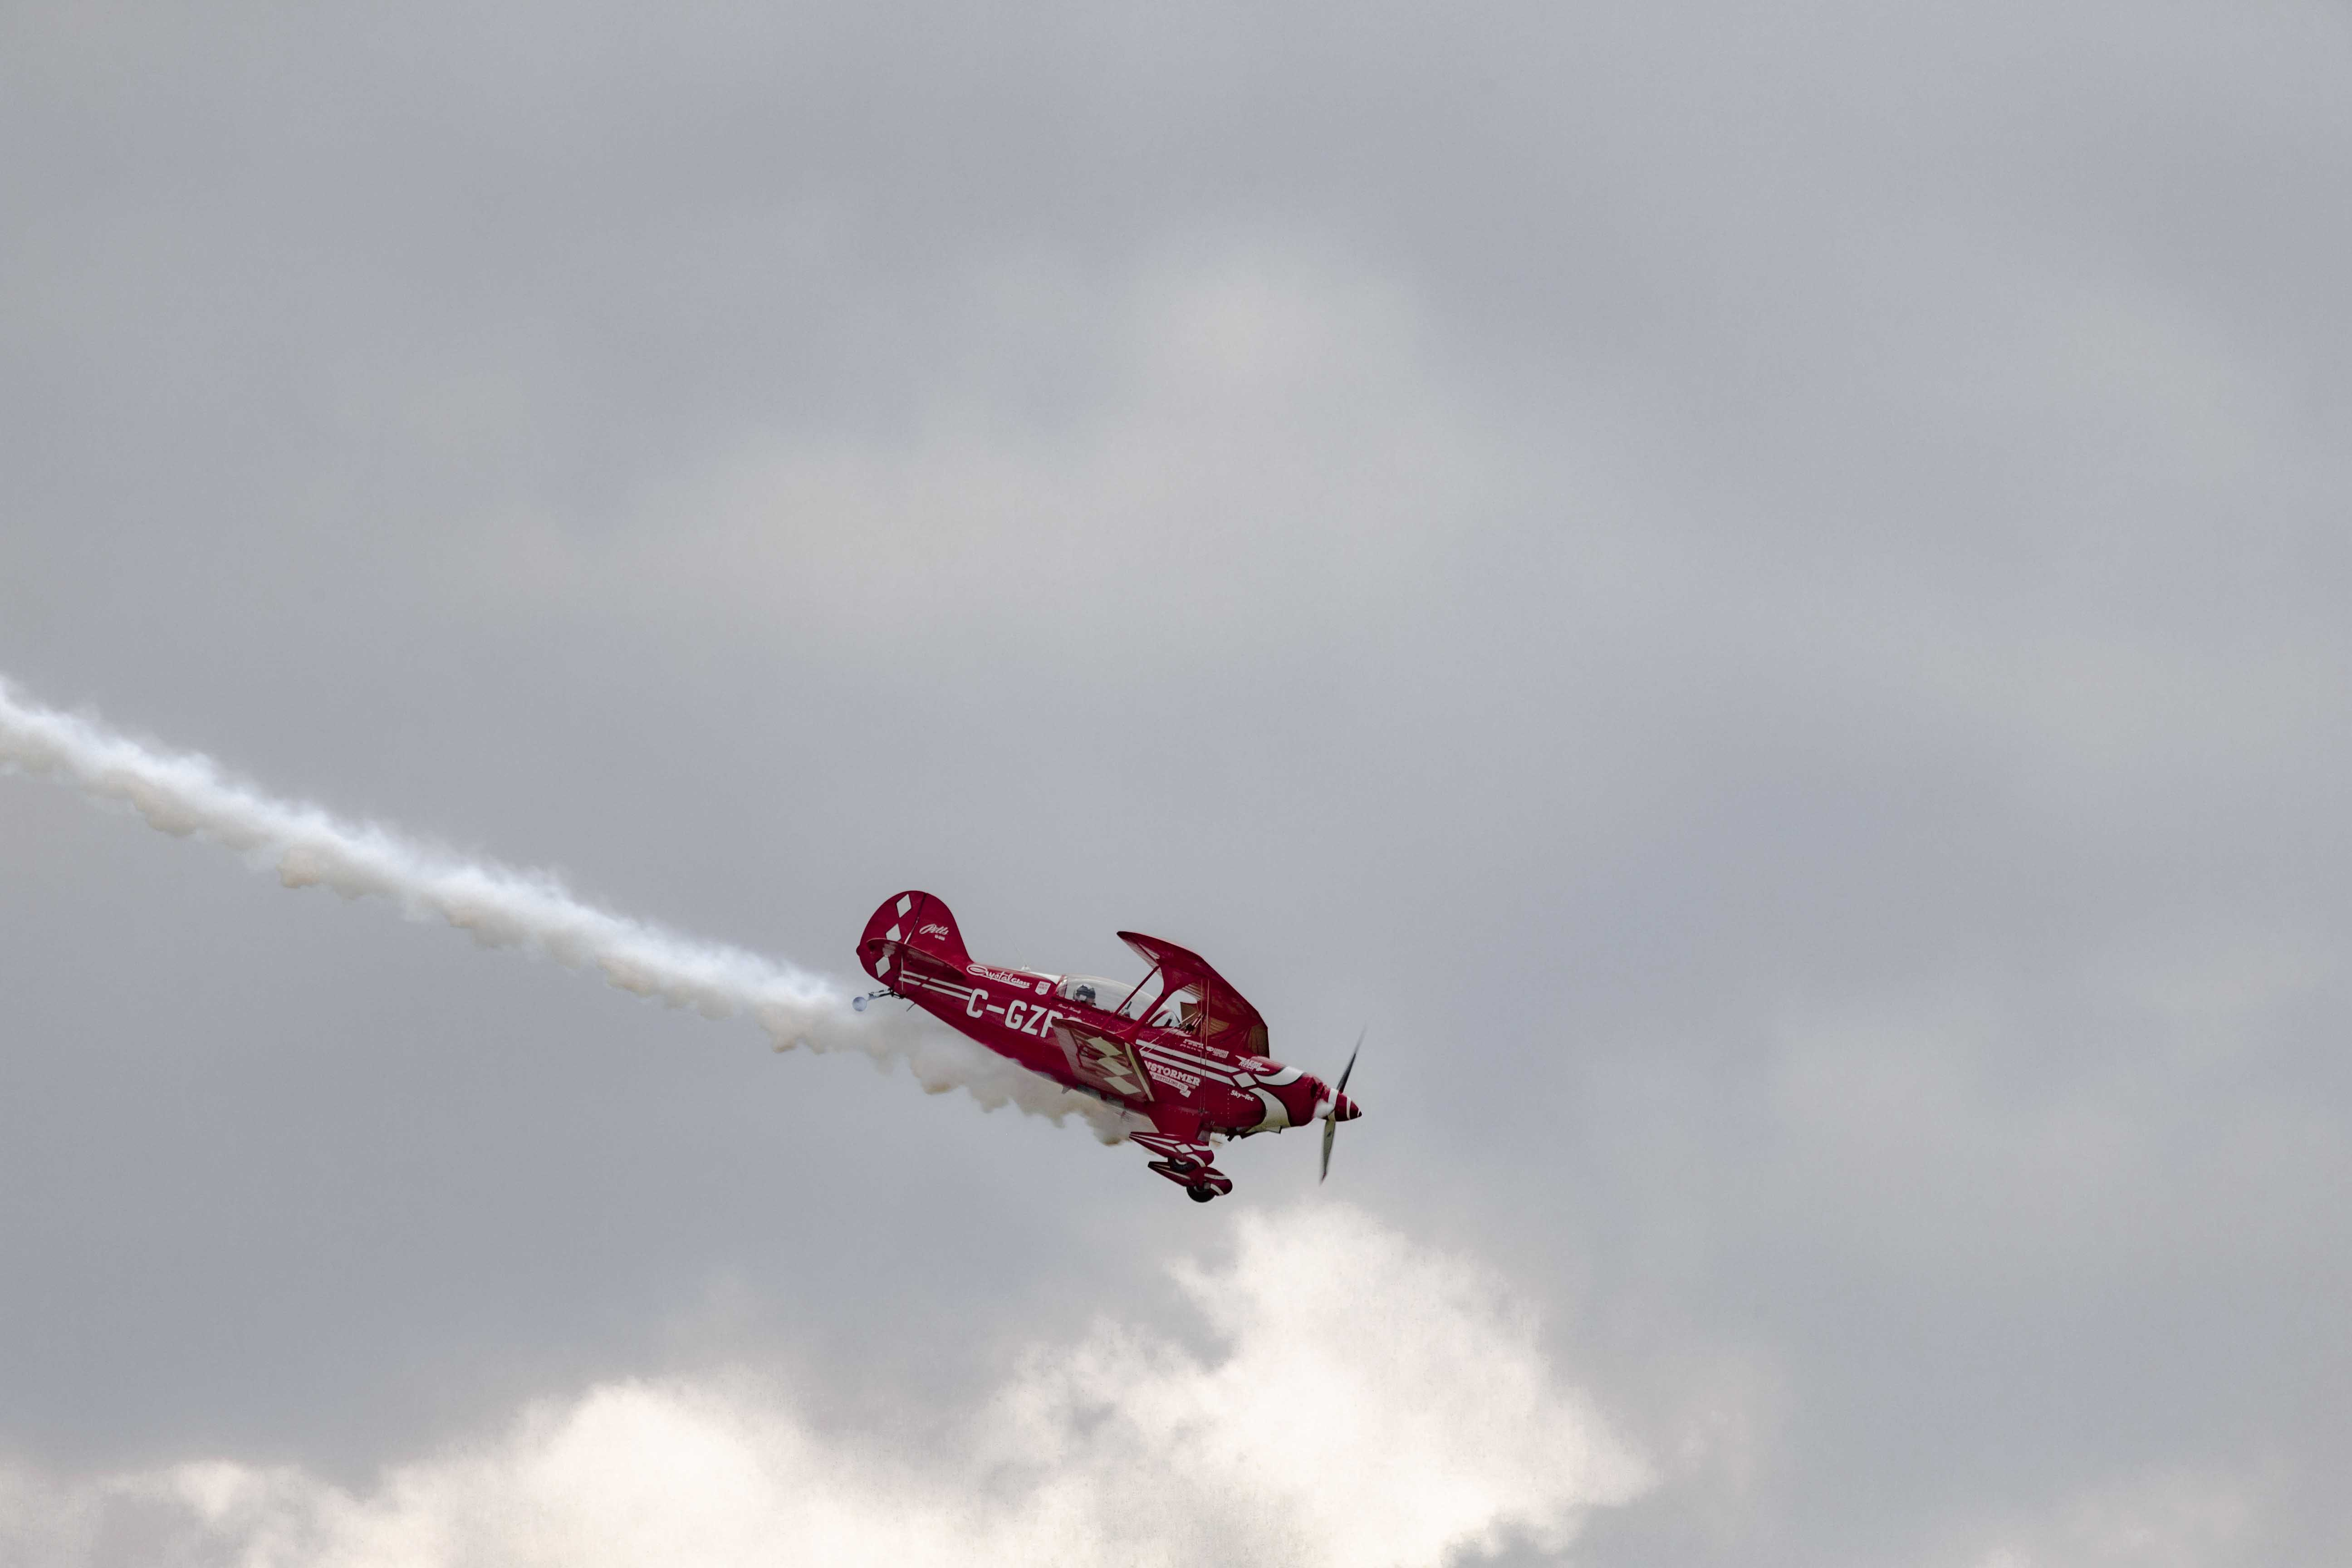 2019-07-27 Springbank Airshow 52